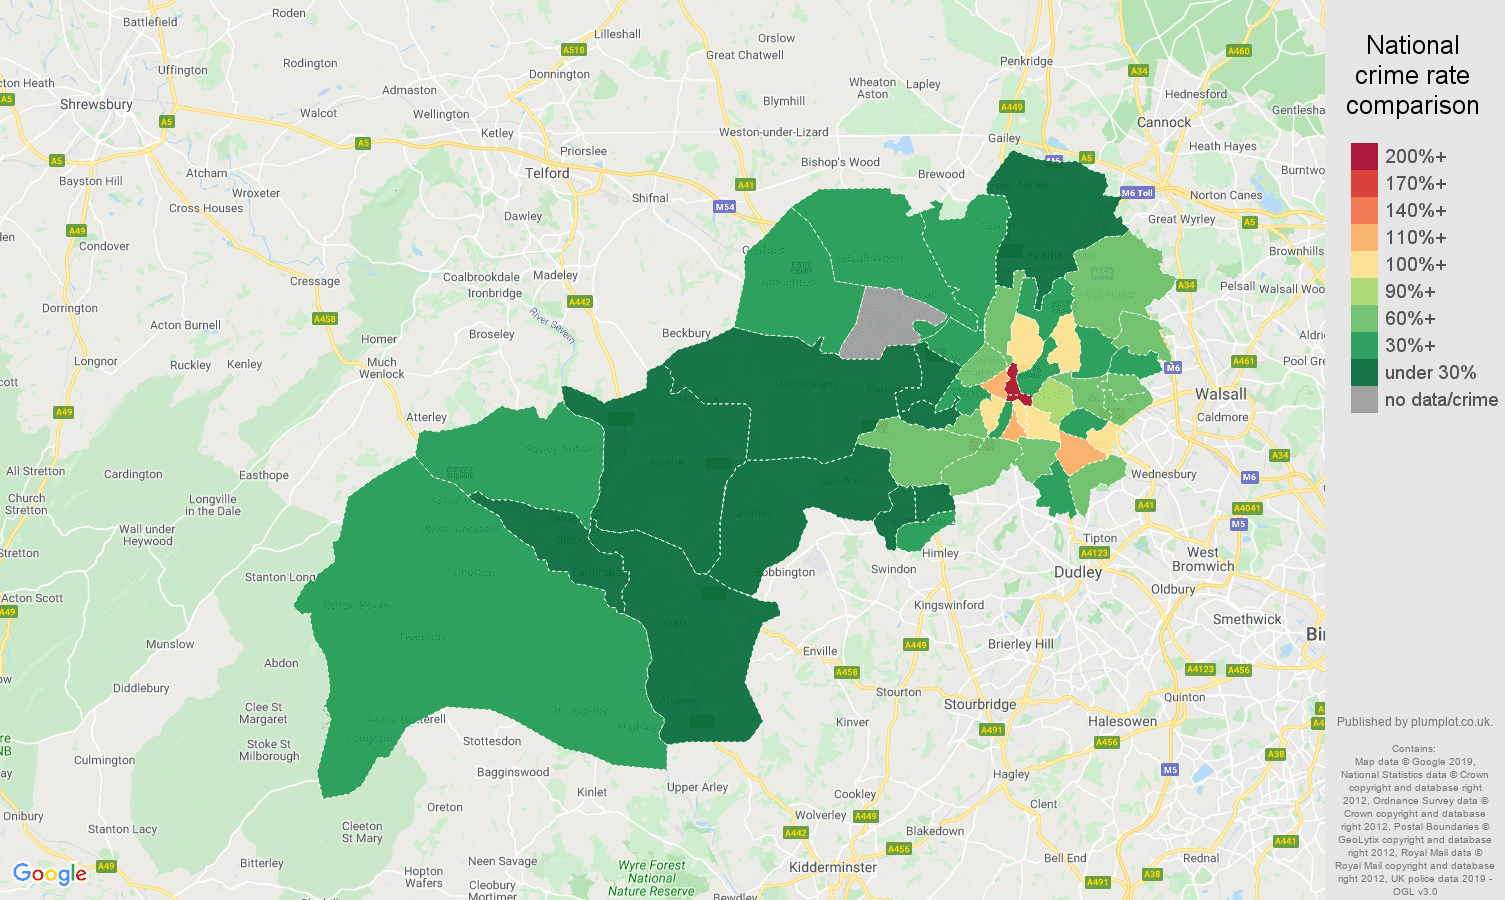 Wolverhampton public order crime rate comparison map